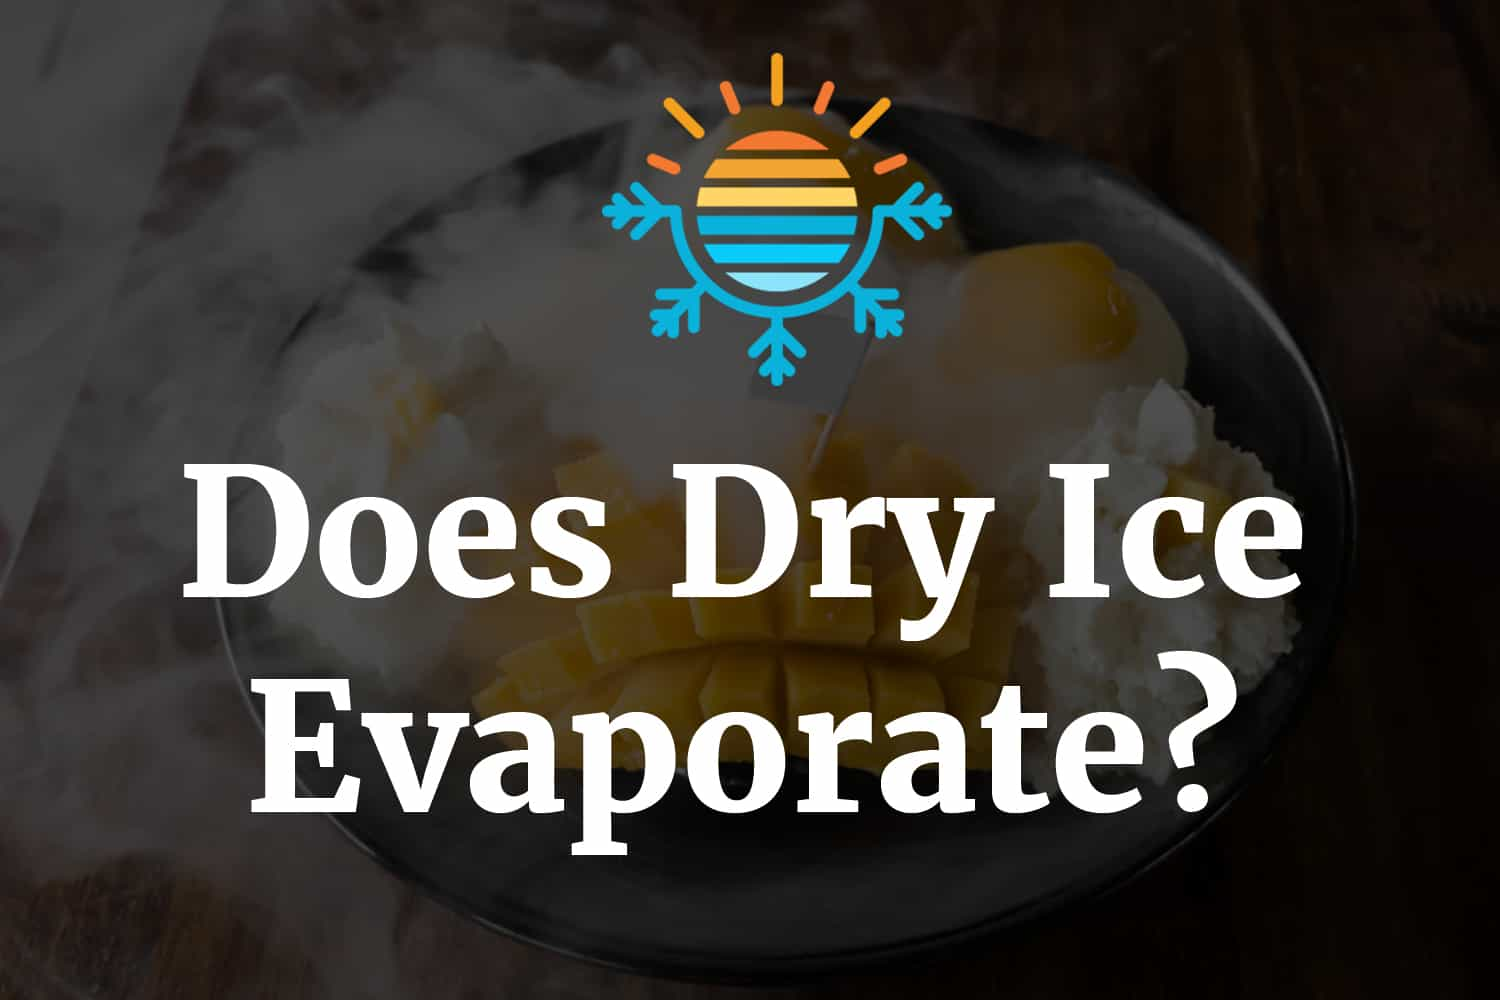 Does dry ice evaporate?